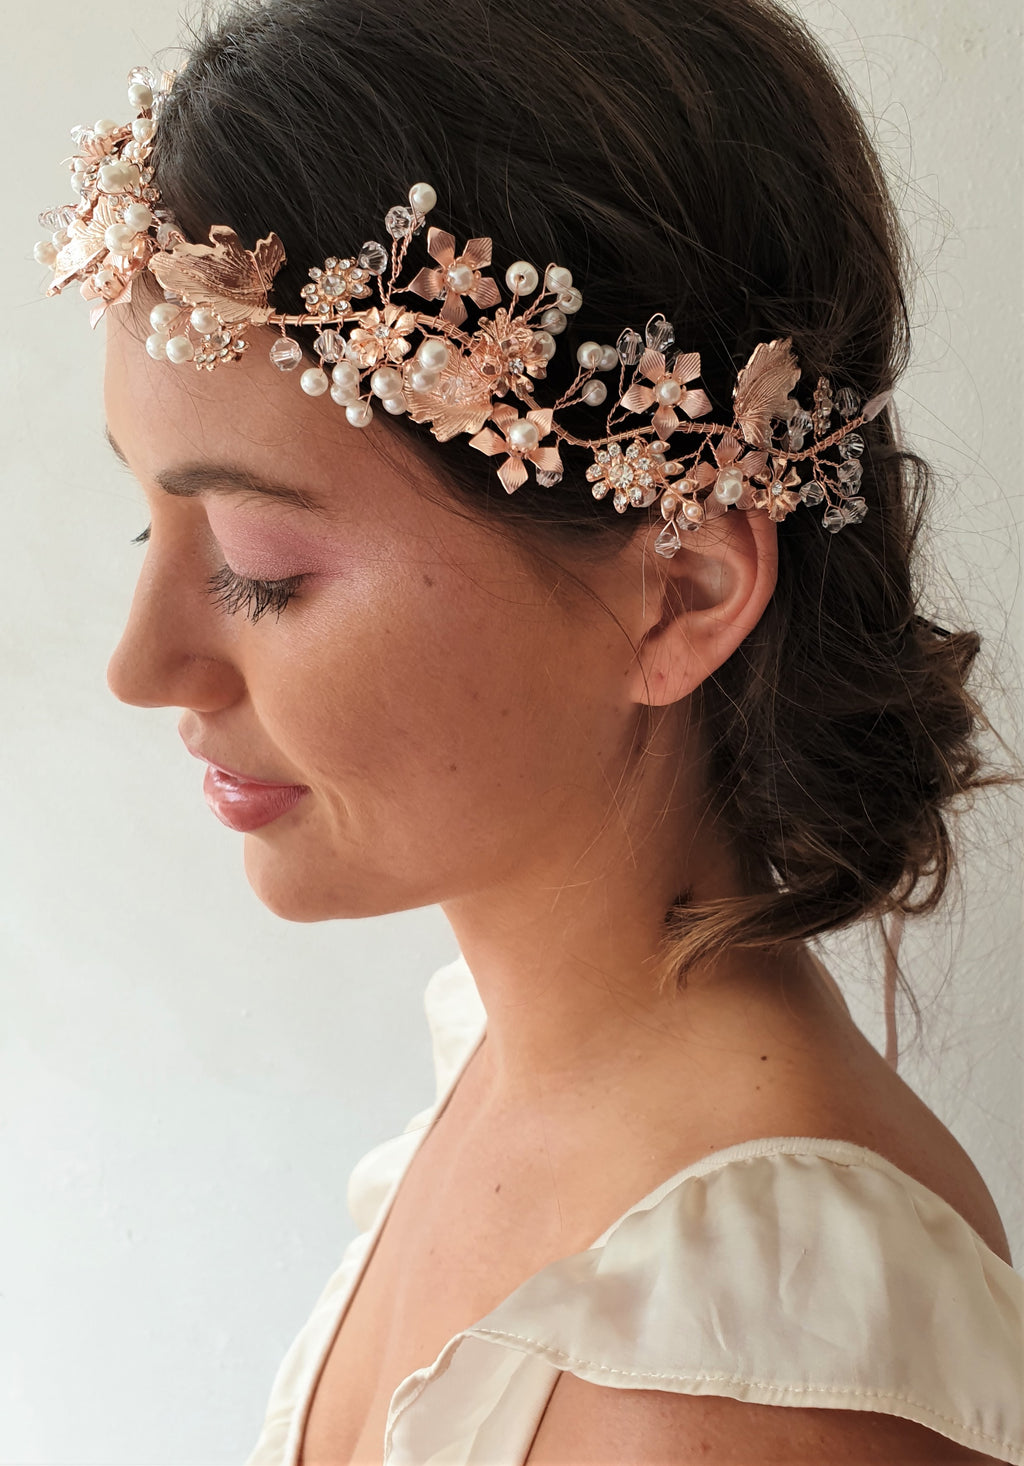 THE EDIE ROSE GOLD HAIR WREATH